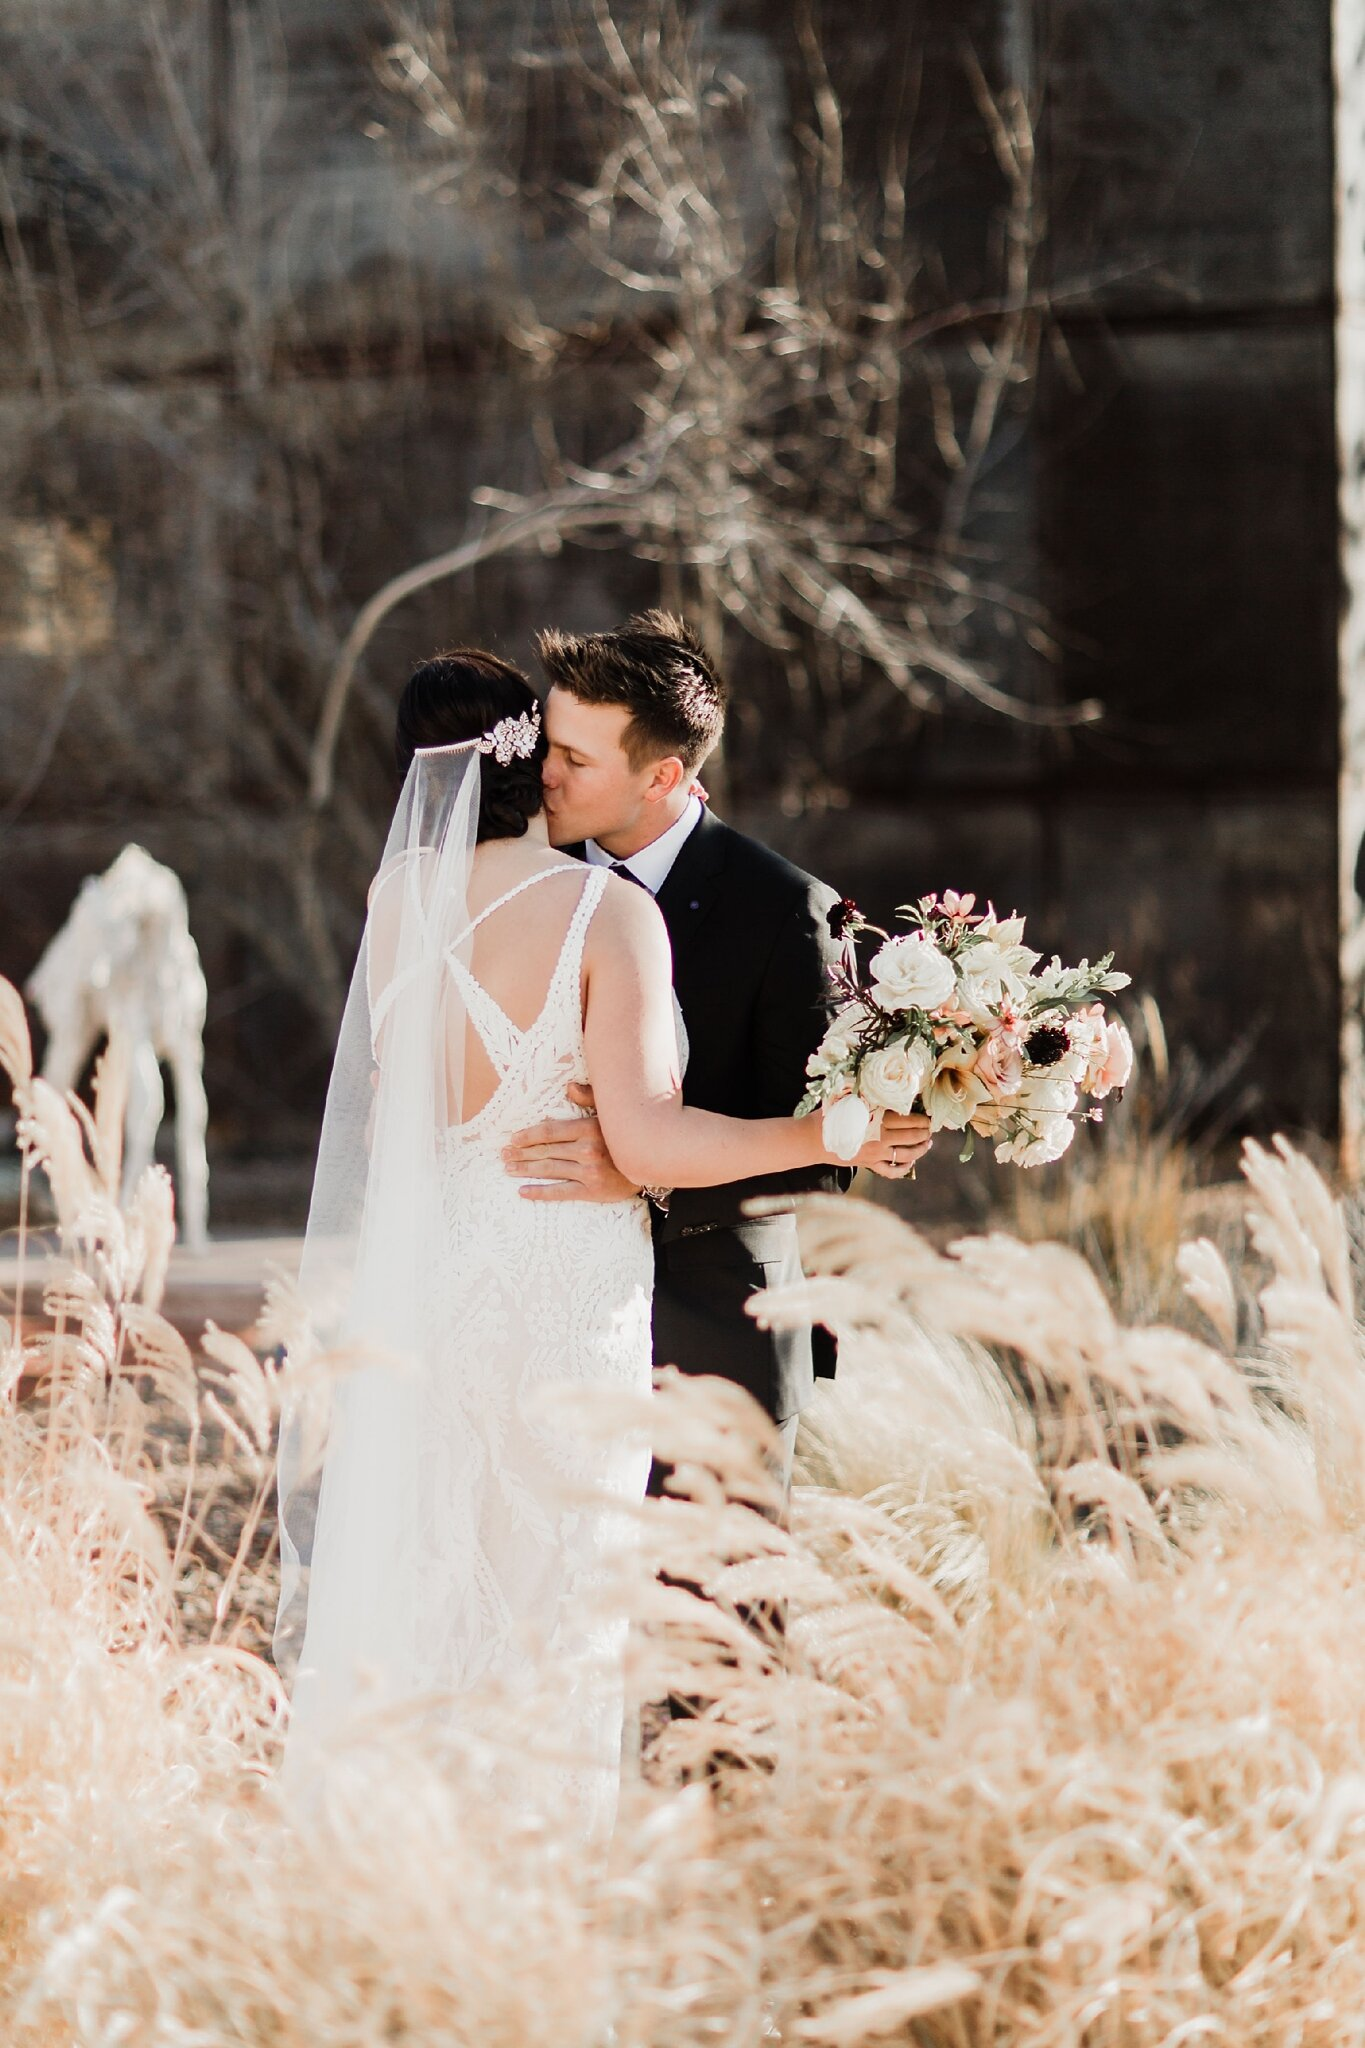 Alicia+lucia+photography+-+albuquerque+wedding+photographer+-+santa+fe+wedding+photography+-+new+mexico+wedding+photographer+-+new+mexico+wedding+-+wedding+venue+-+new+mexico+wedding+venue+-+four+seasons+wedding+-+four+seasons+santa+fe_0006.jpg